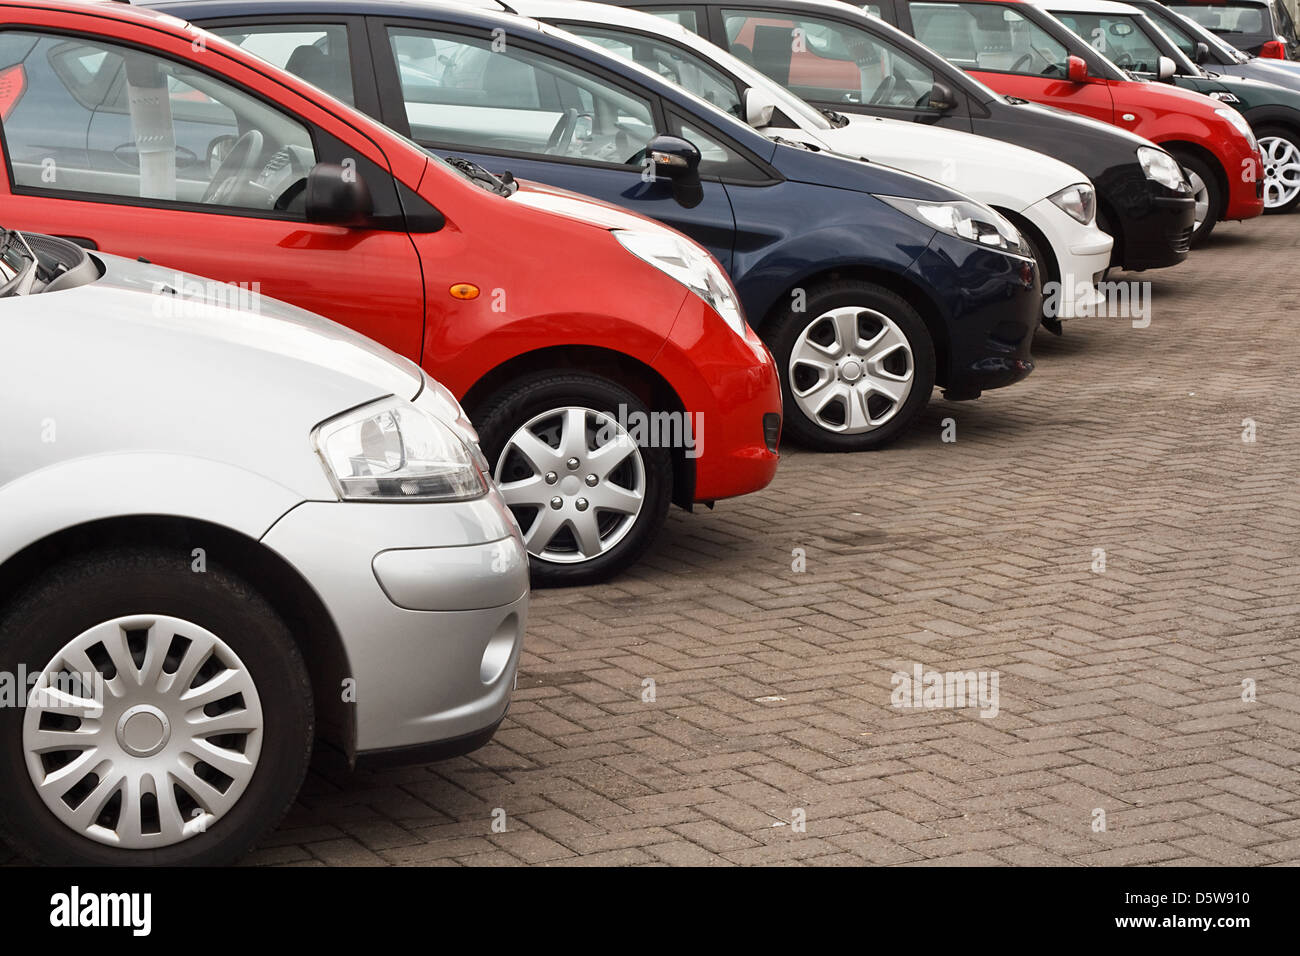 row of different european marques of used cars for retail sale on a motor dealers forecourt all logos removed - Stock Image